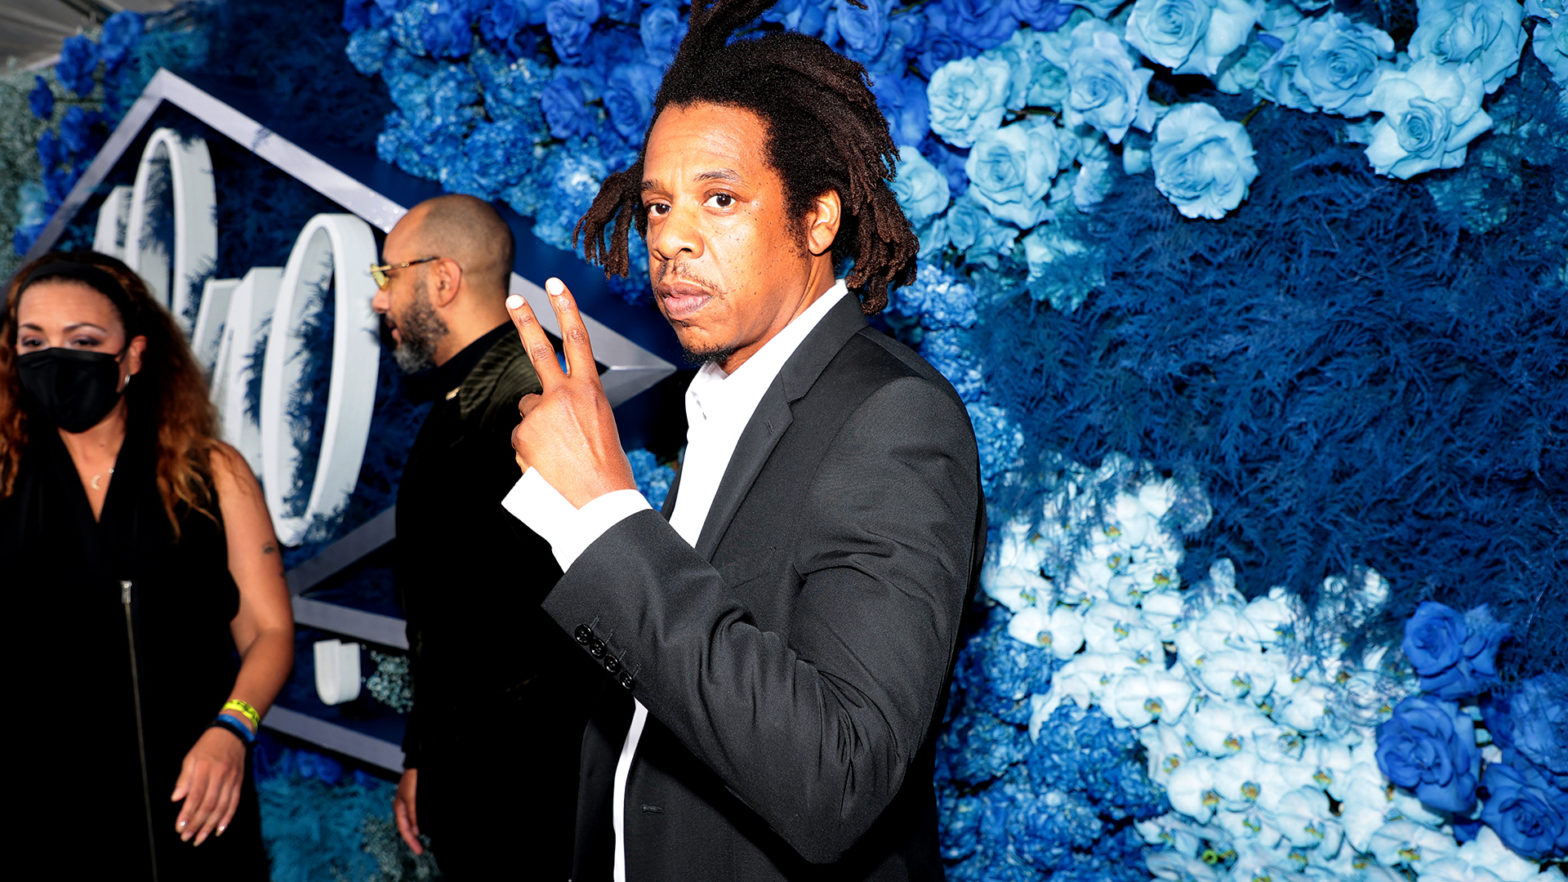 Jay-Z Invests In Flowhub, A Cannabis Tech Company With A Valuation Of Over $200M